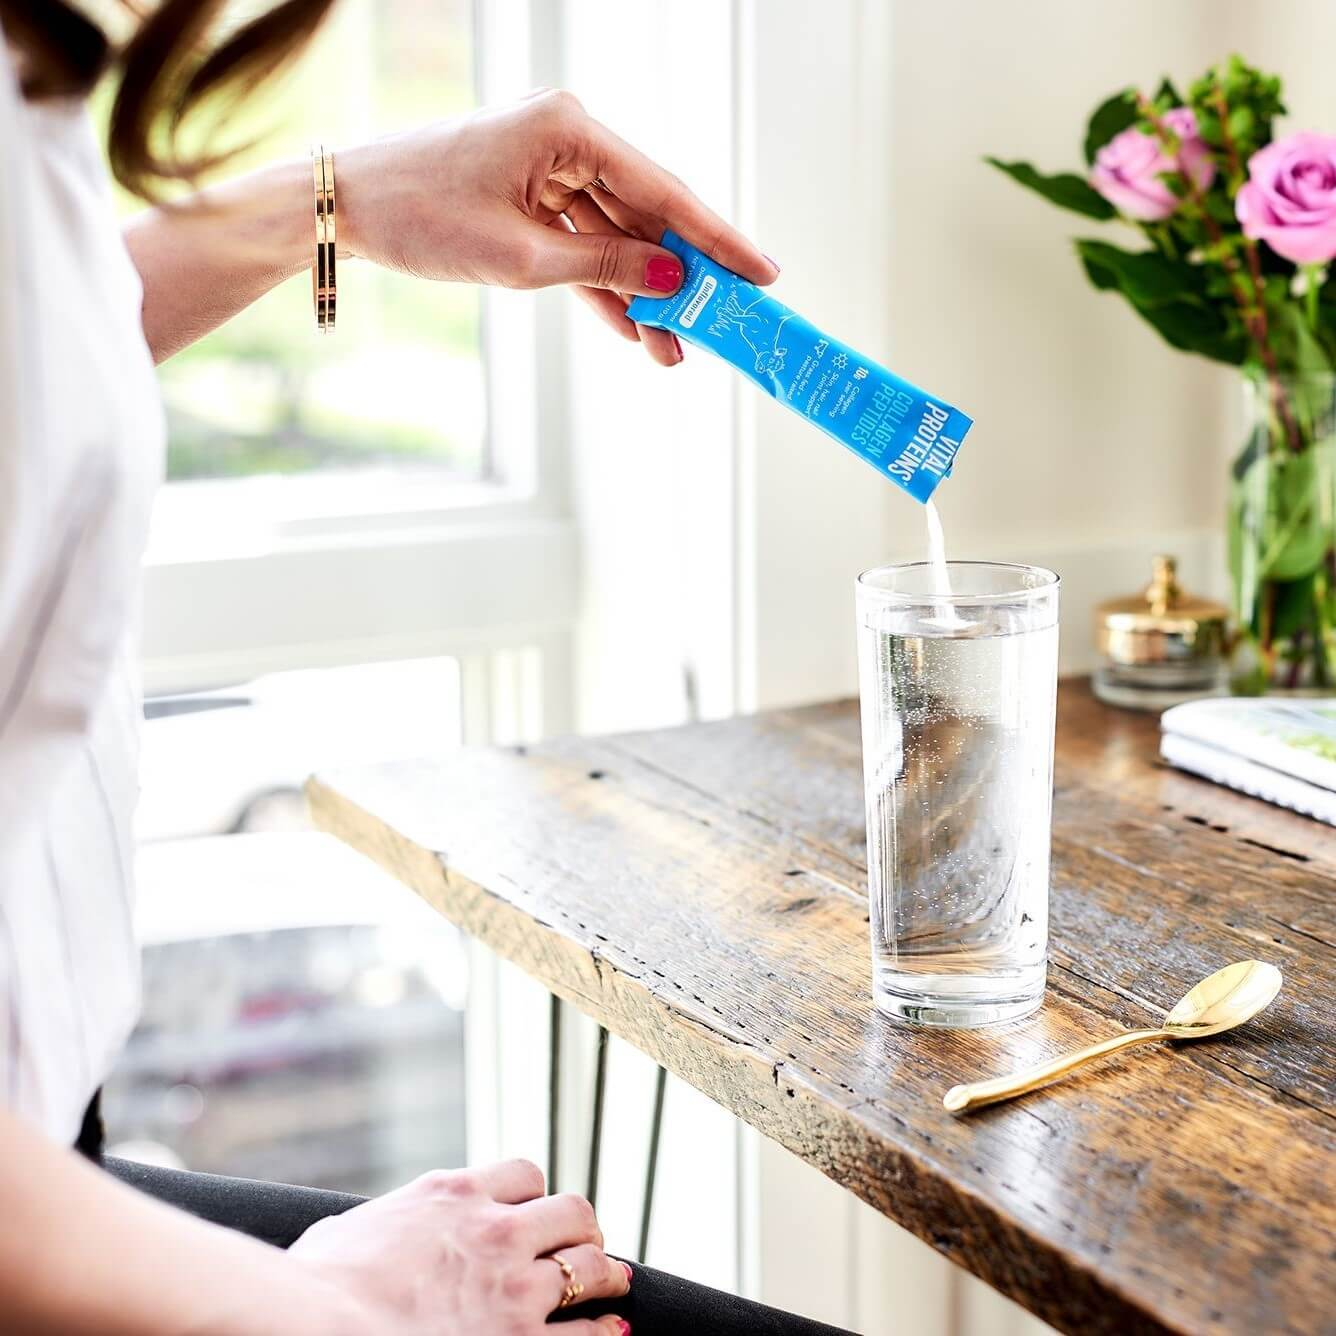 Women pouring collagen sachet into glass of water